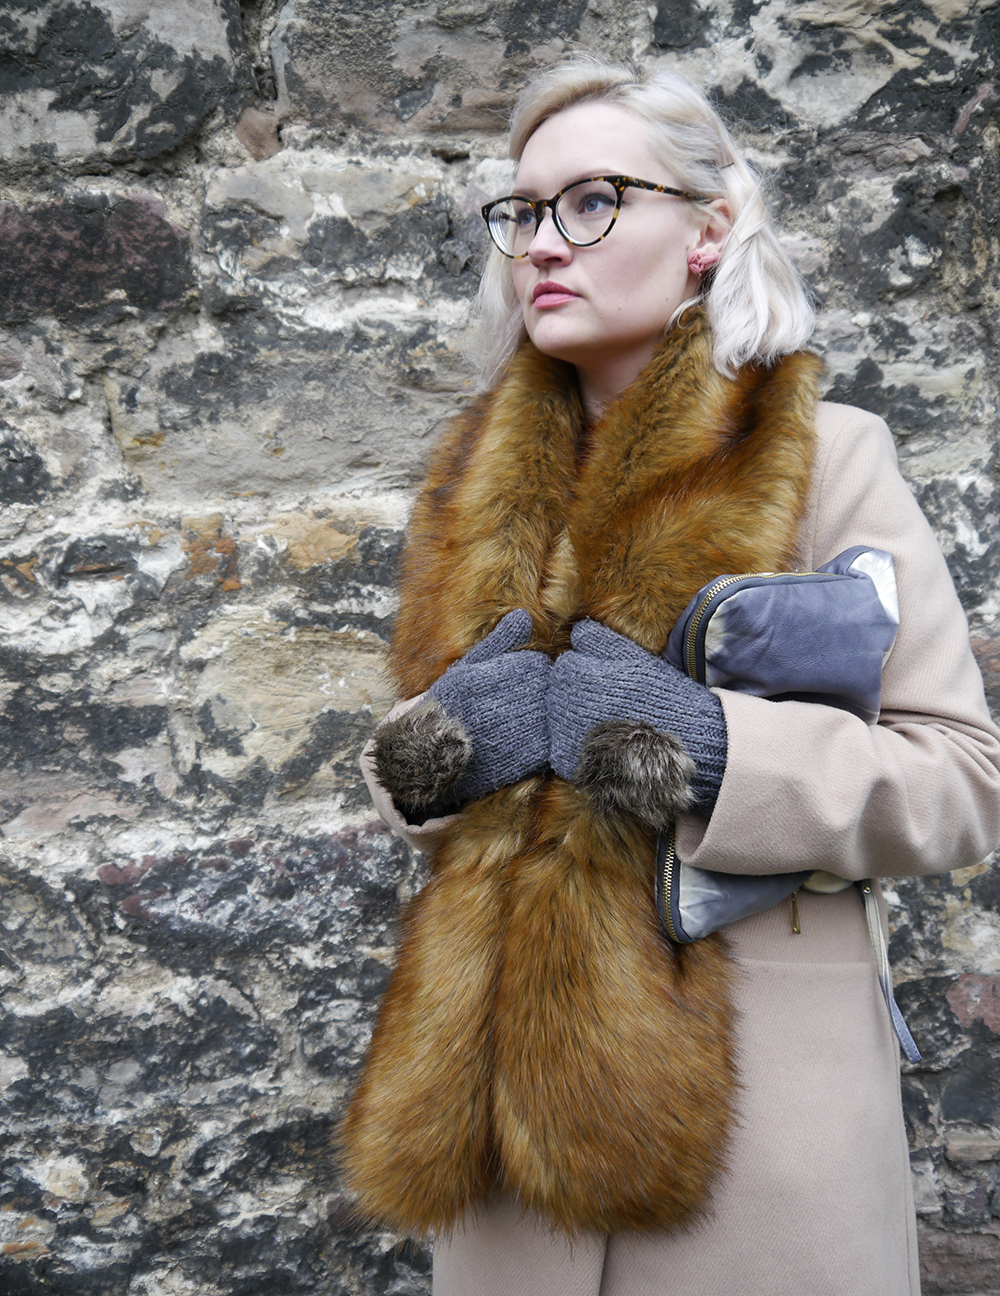 Scottish fashion blogger Wardrobe Conversations wearing faux fur trend with rabbit mittens at Edinburgh Castle